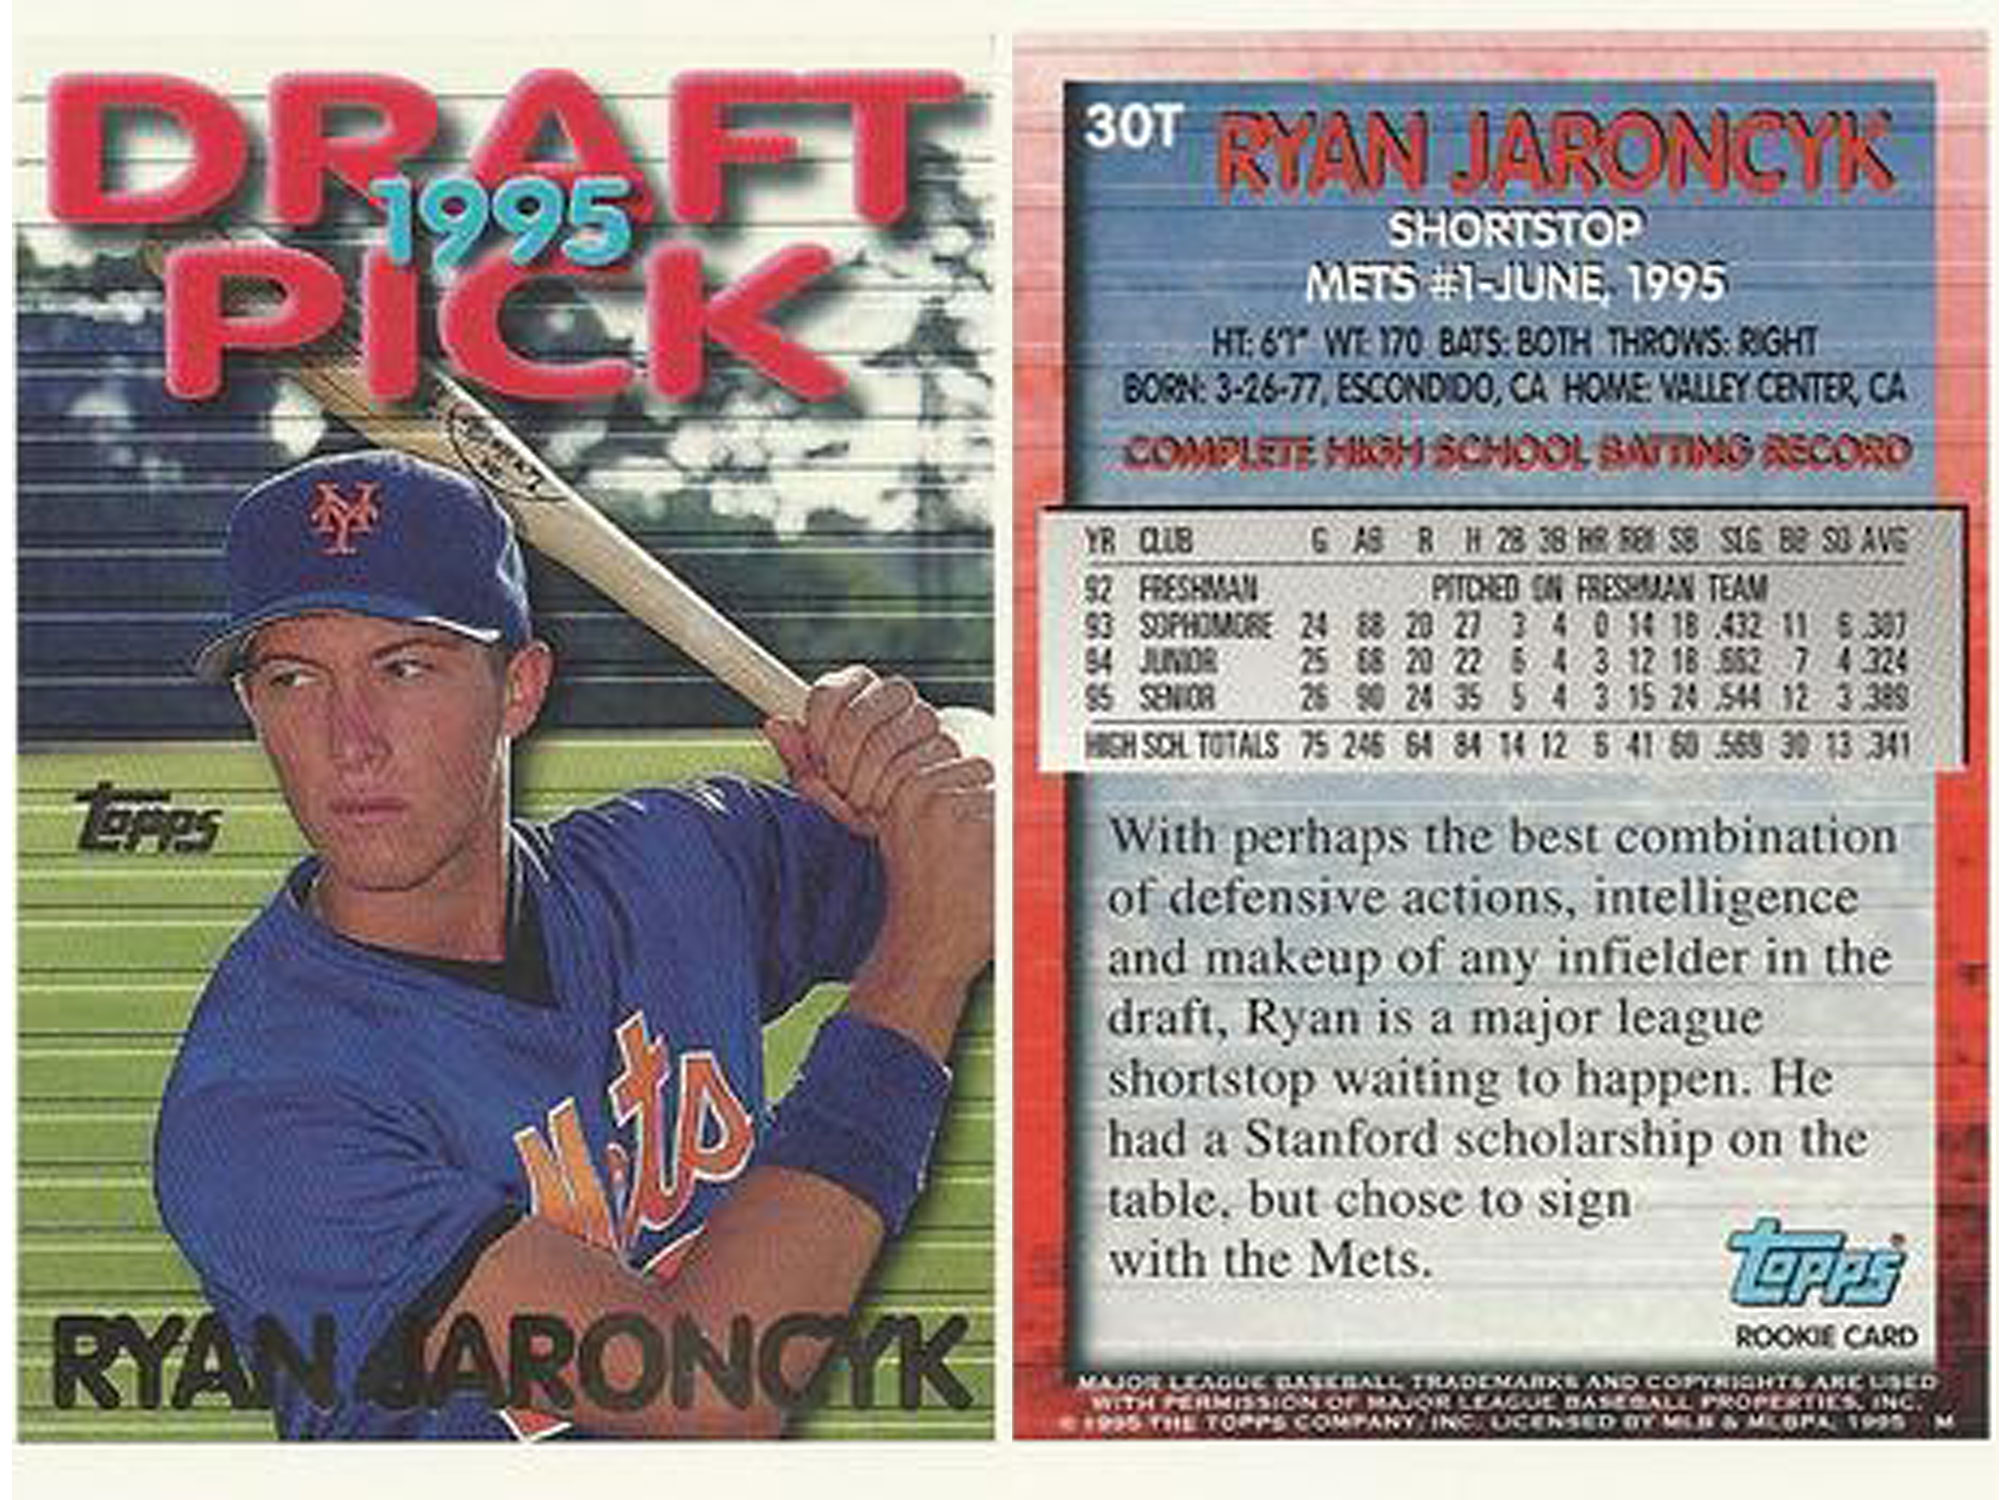 Jaroncyk arrived in pro ball with strong stats and glowing reviews, as displayed on the back of his rookie card.